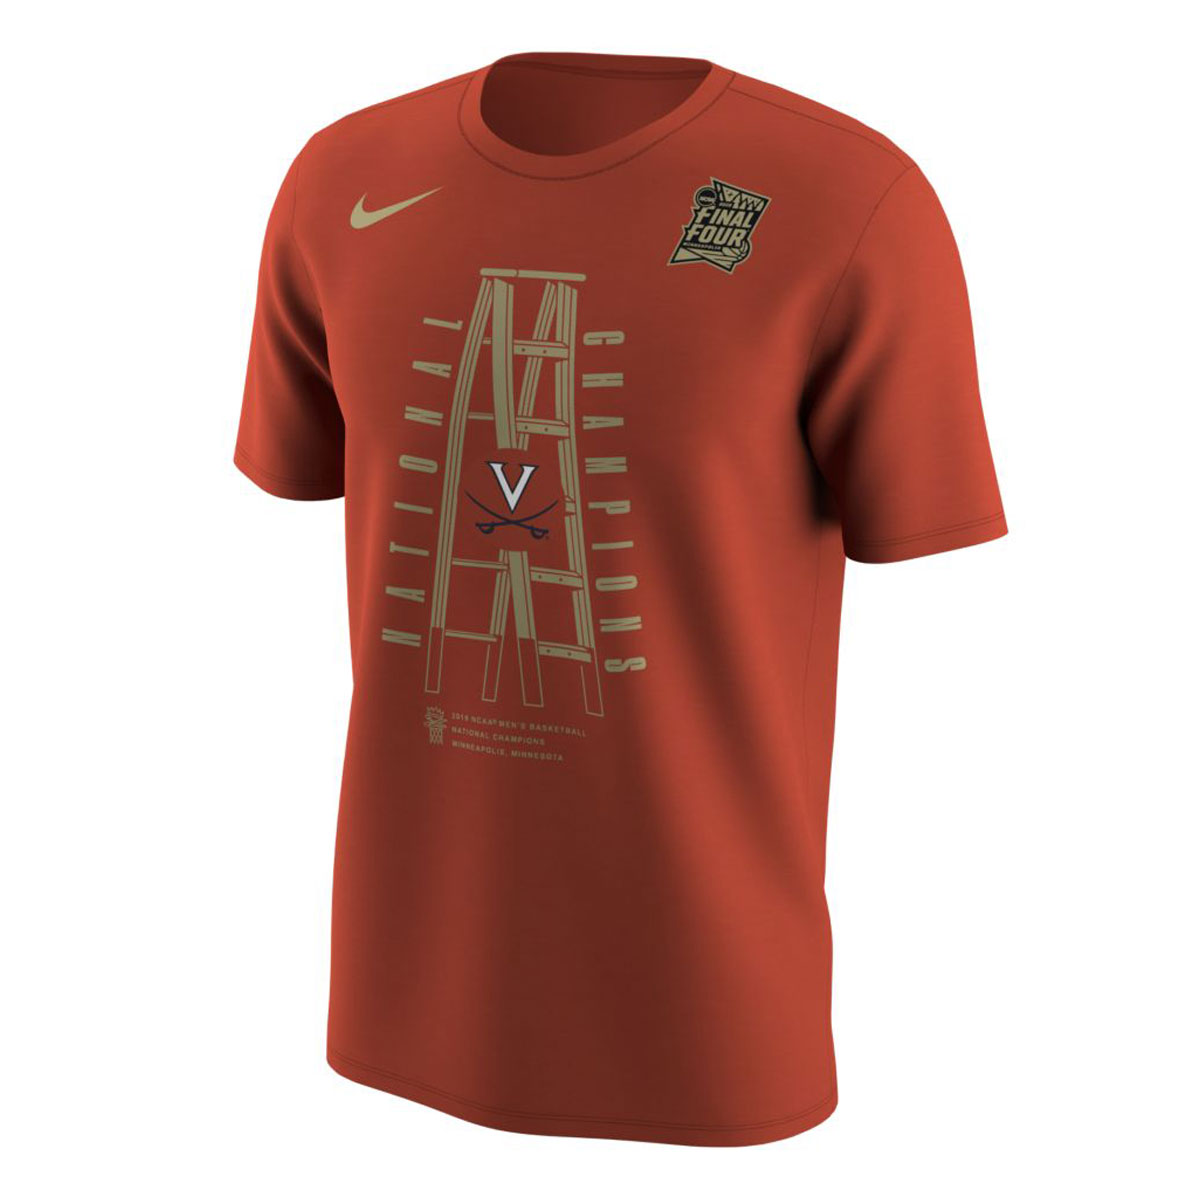 2019 National Champions Ladder T-shirt